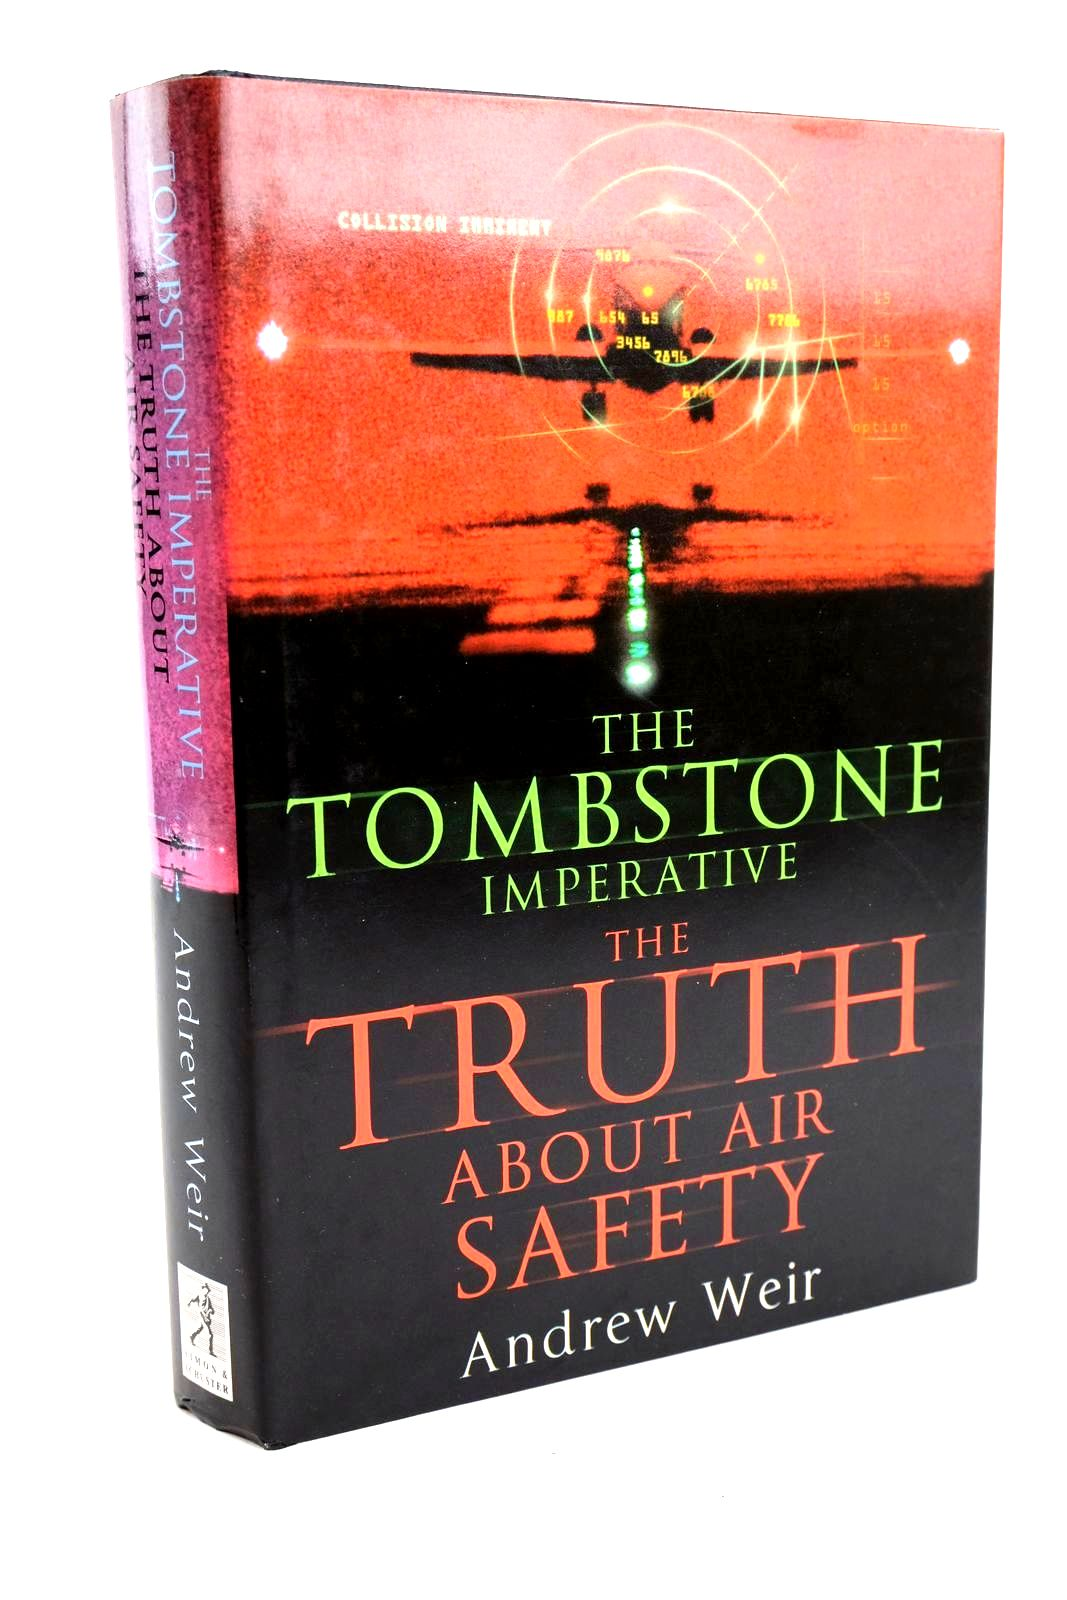 Photo of THE TOMBSTONE IMPERATIVE - THE TRUTH ABOUT AIR SAFETY written by Weir, Andrew published by Simon & Schuster Uk Ltd (STOCK CODE: 1320215)  for sale by Stella & Rose's Books